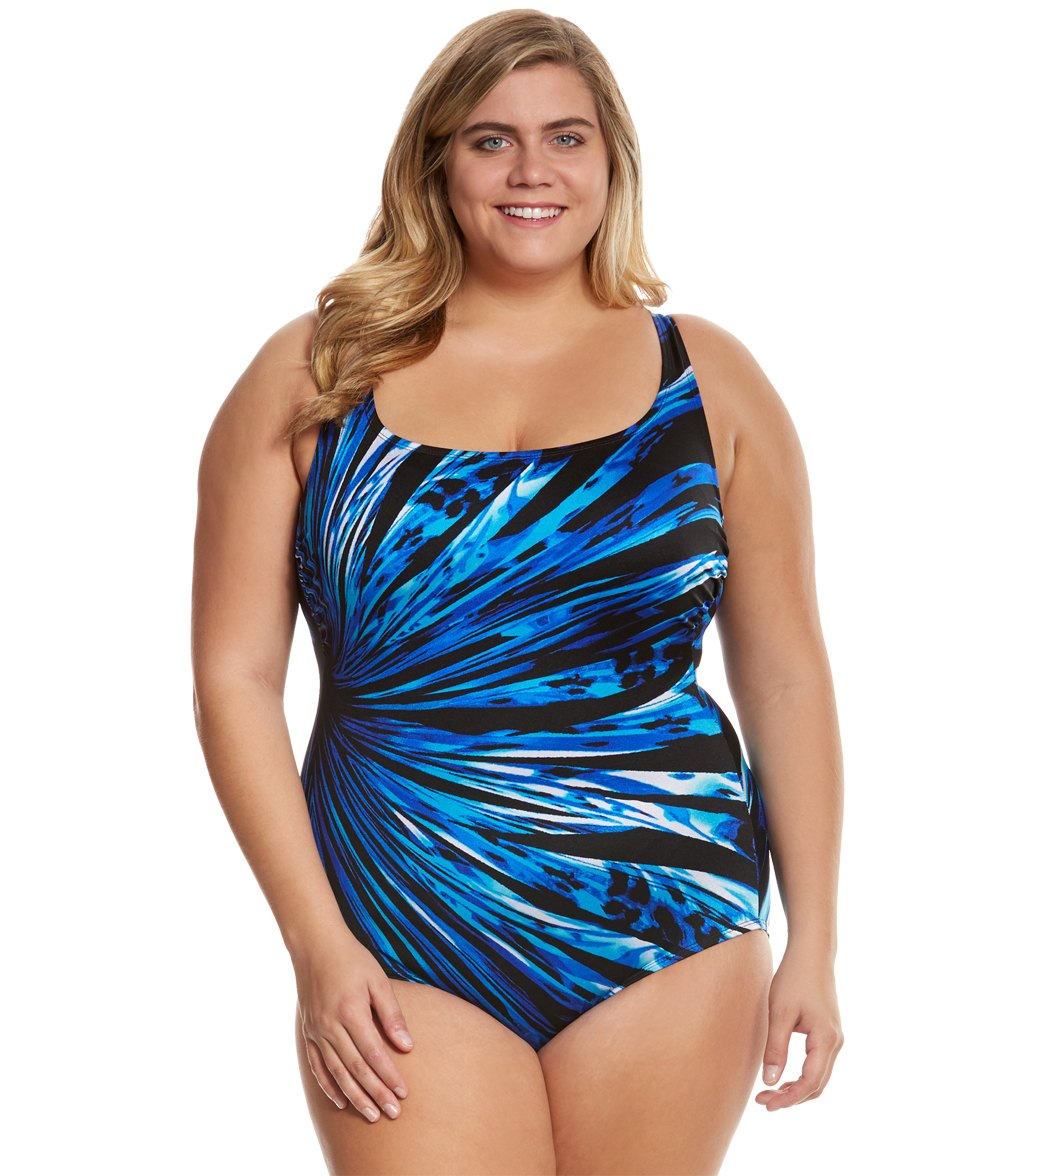 76aa009efd266 Layered one piece swimsuit One Piece Plus Size Swimsuit ...